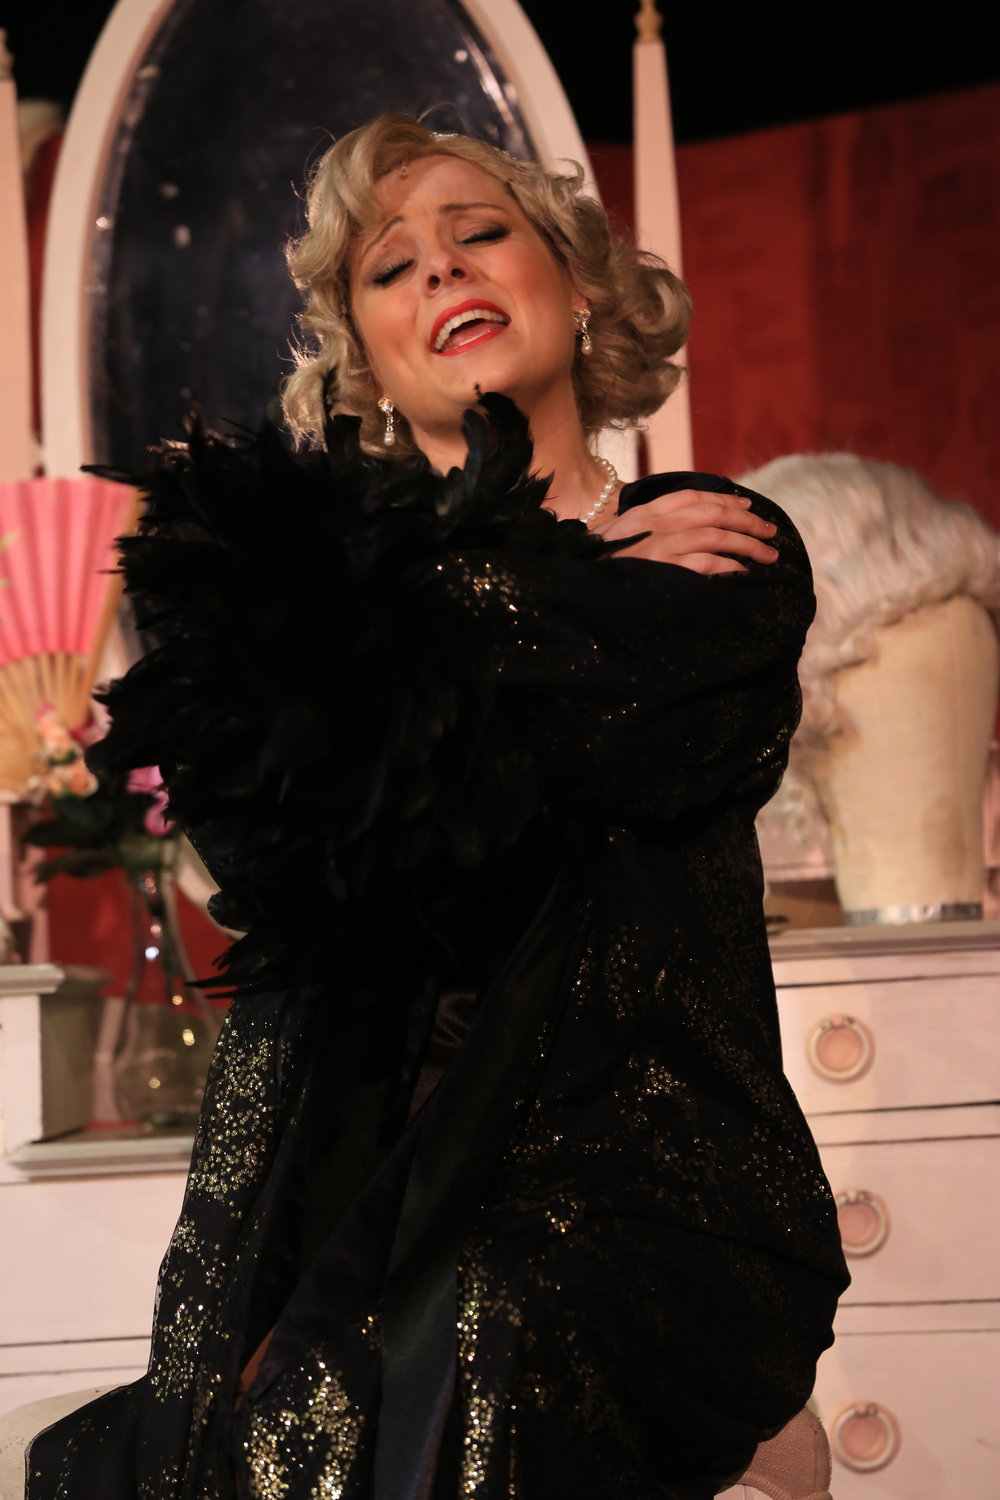 Kirsty Bennett as Lina Lamont, performing 'What's Wrong With me?""